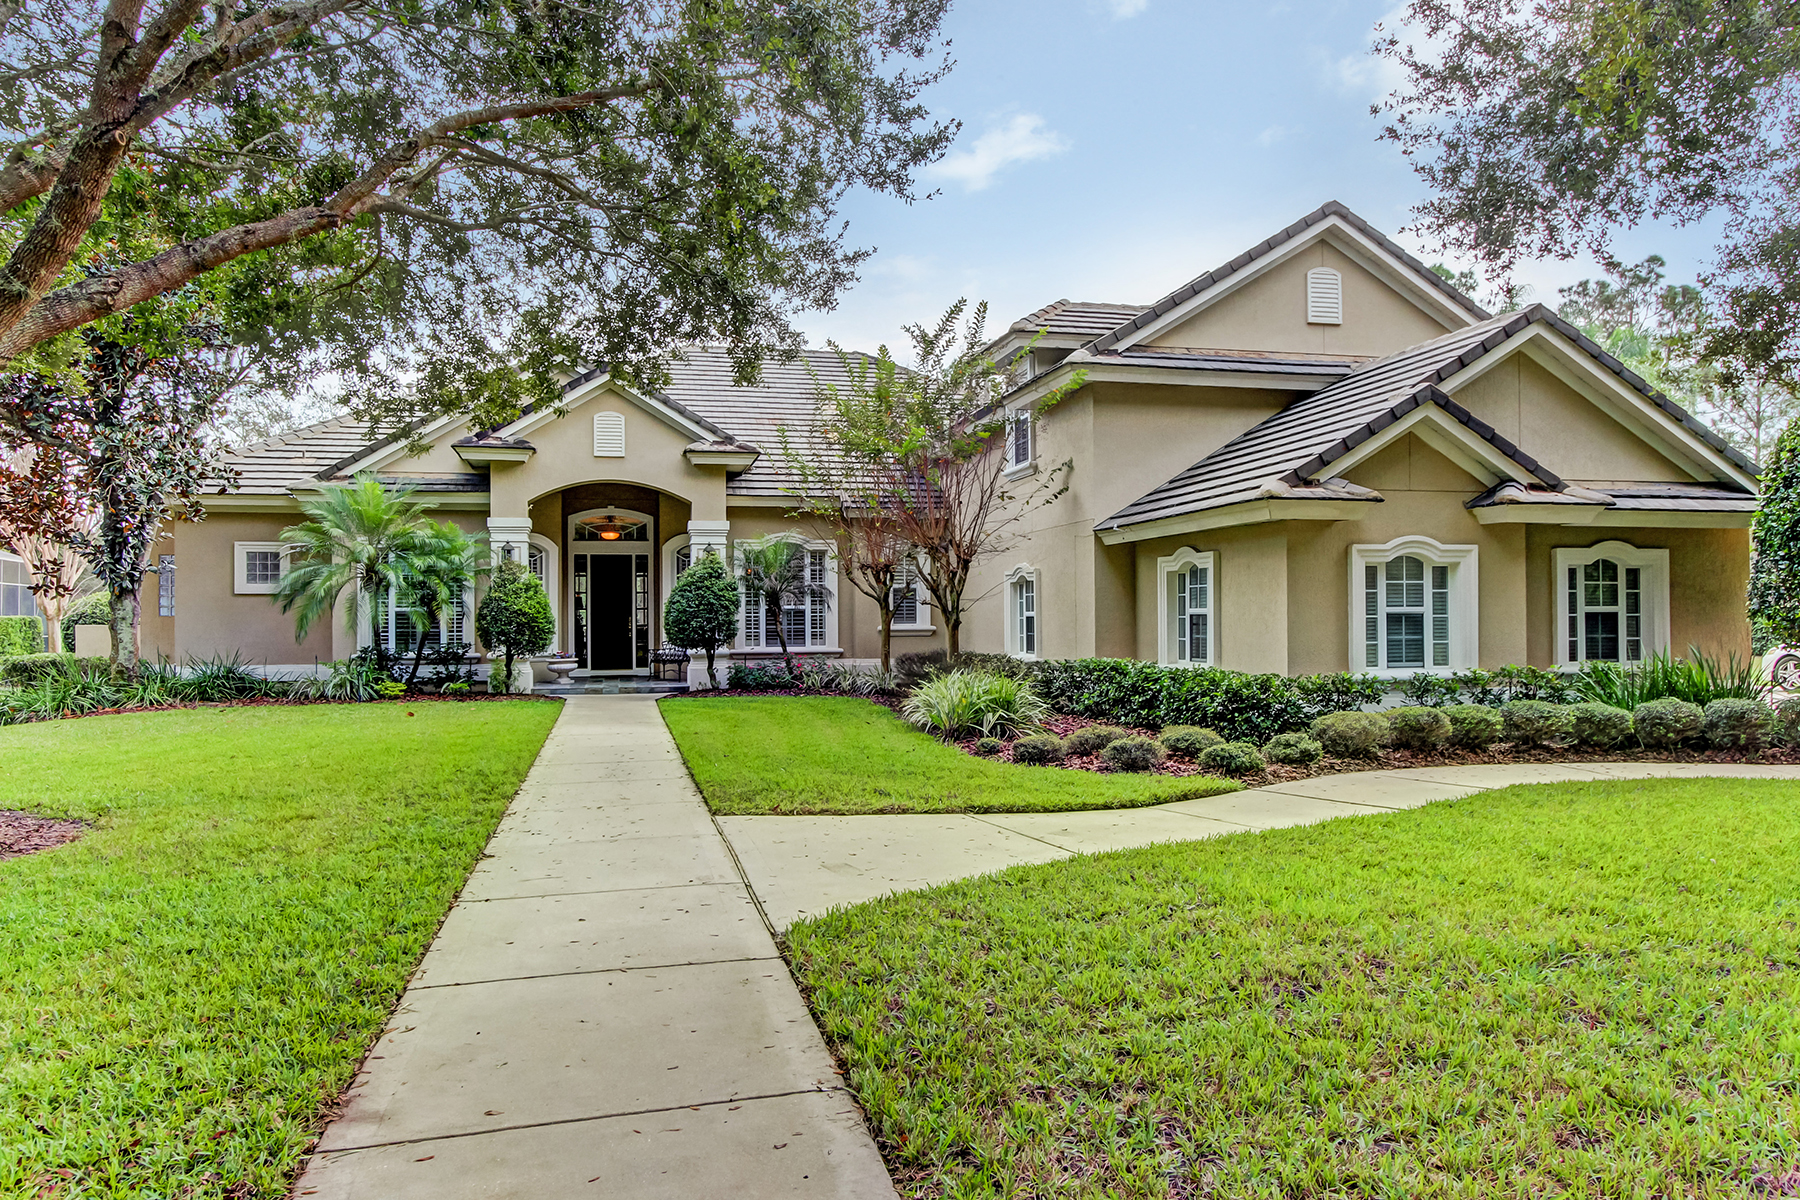 Single Family Home for Sale at ORLANDO - LONGWOOD 3373 Lakeview Oaks Dr Longwood, Florida 32779 United States